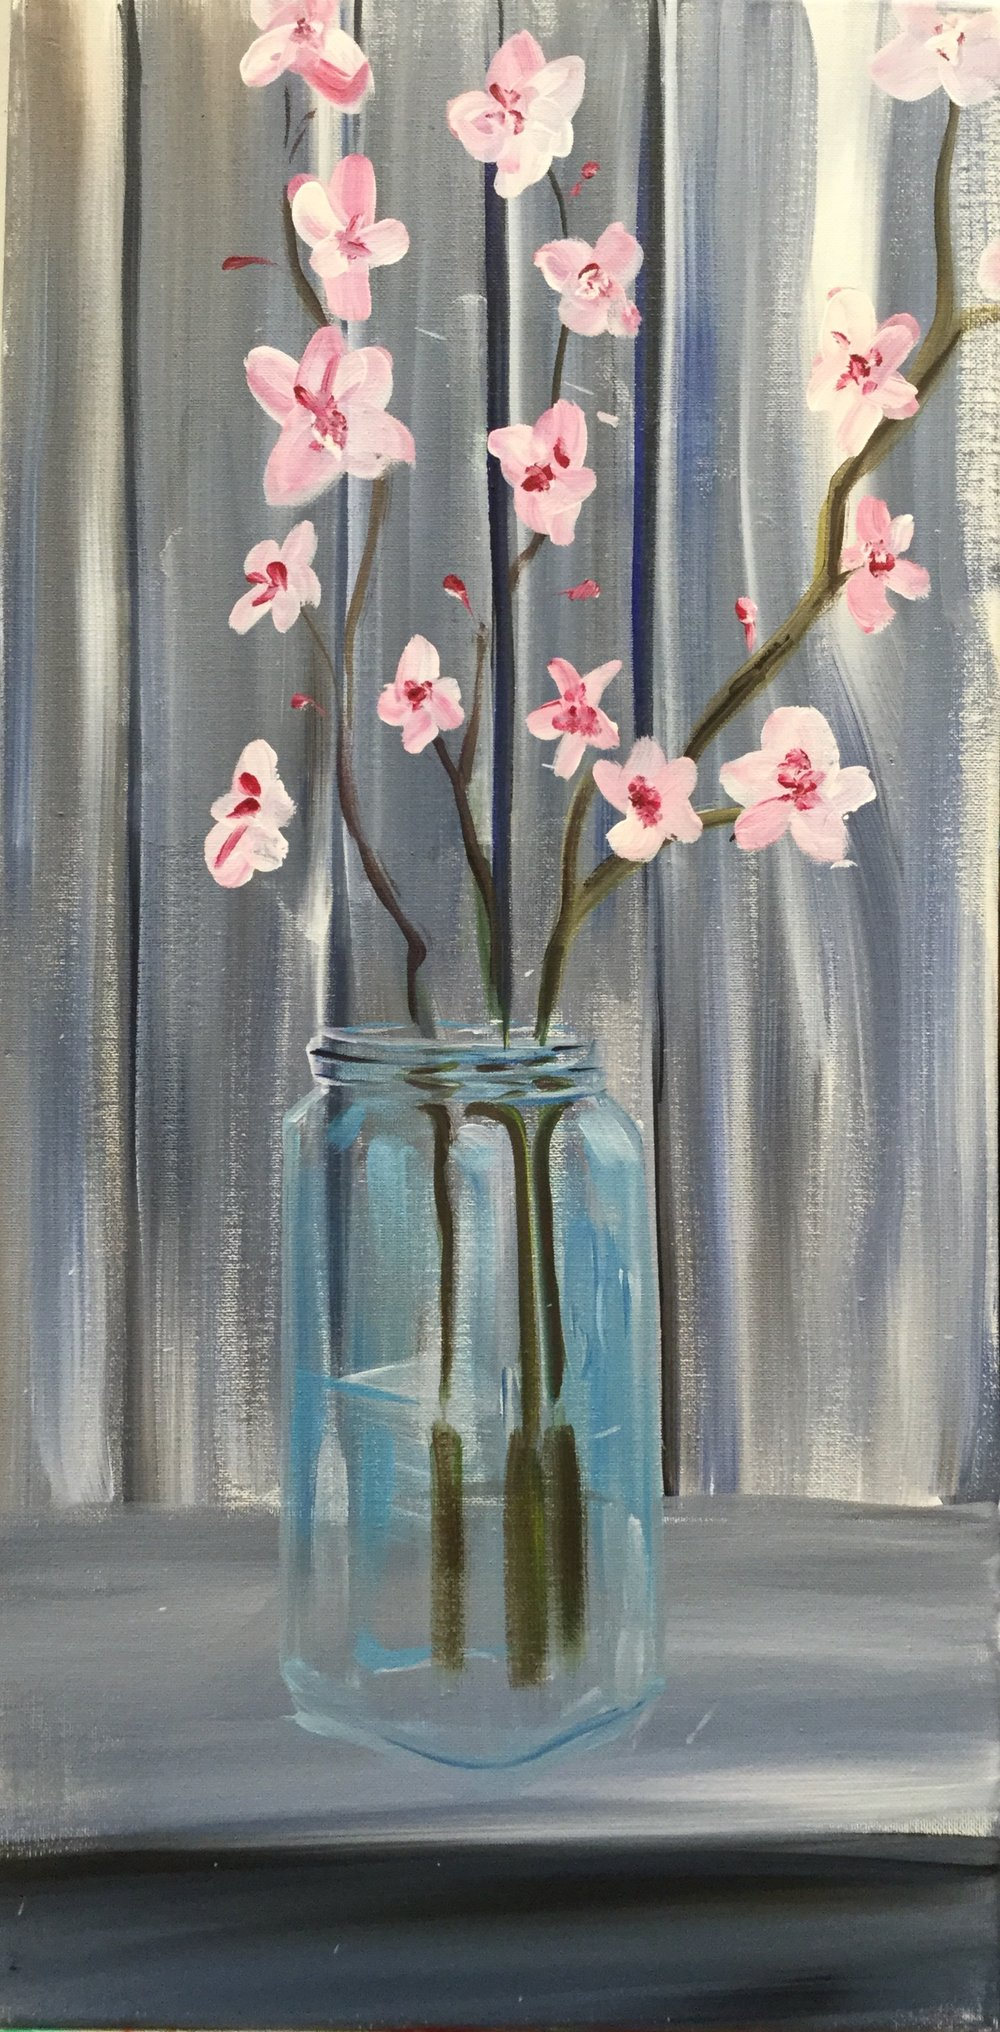 PINT & Paint: Shabby Chic - Meet Adam Meikle at the Brew Pub to paint a shabby chic mason jar of blossoms - step by step instruction for beginners included!